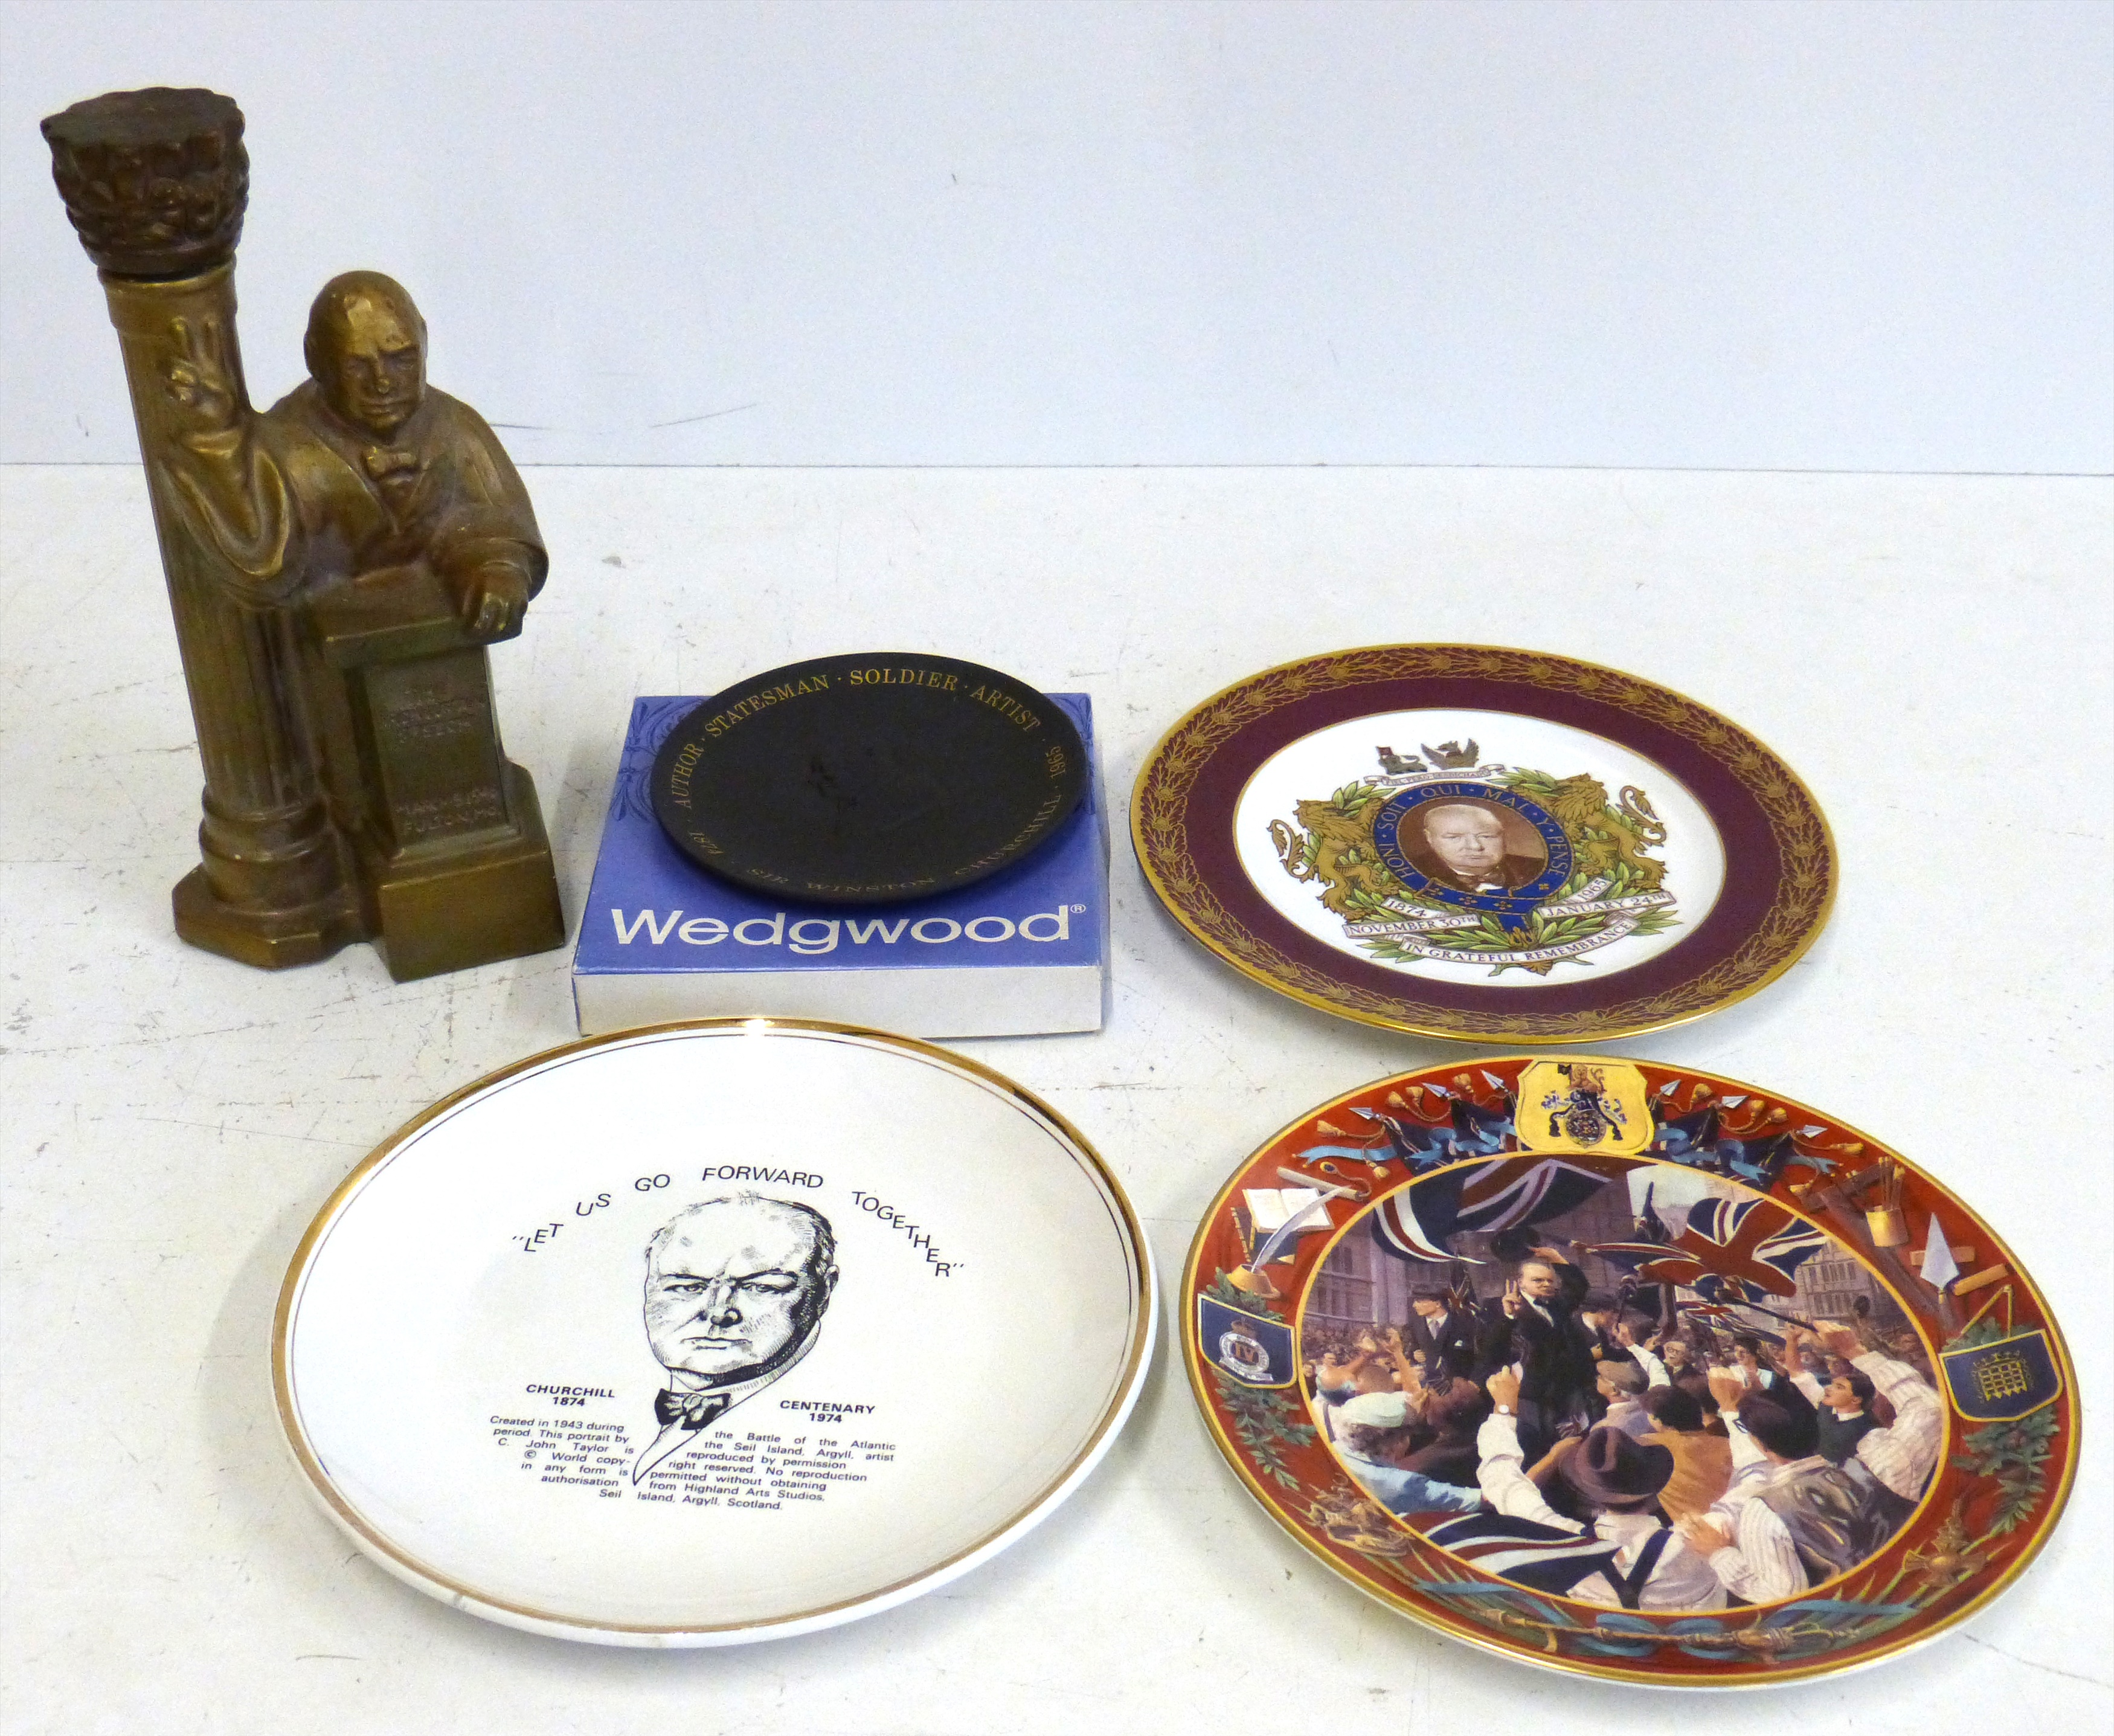 Lot 115 - Churchill Commemorative ware, to include an Iron Curtain Speech 1946 decanter and stopper, and